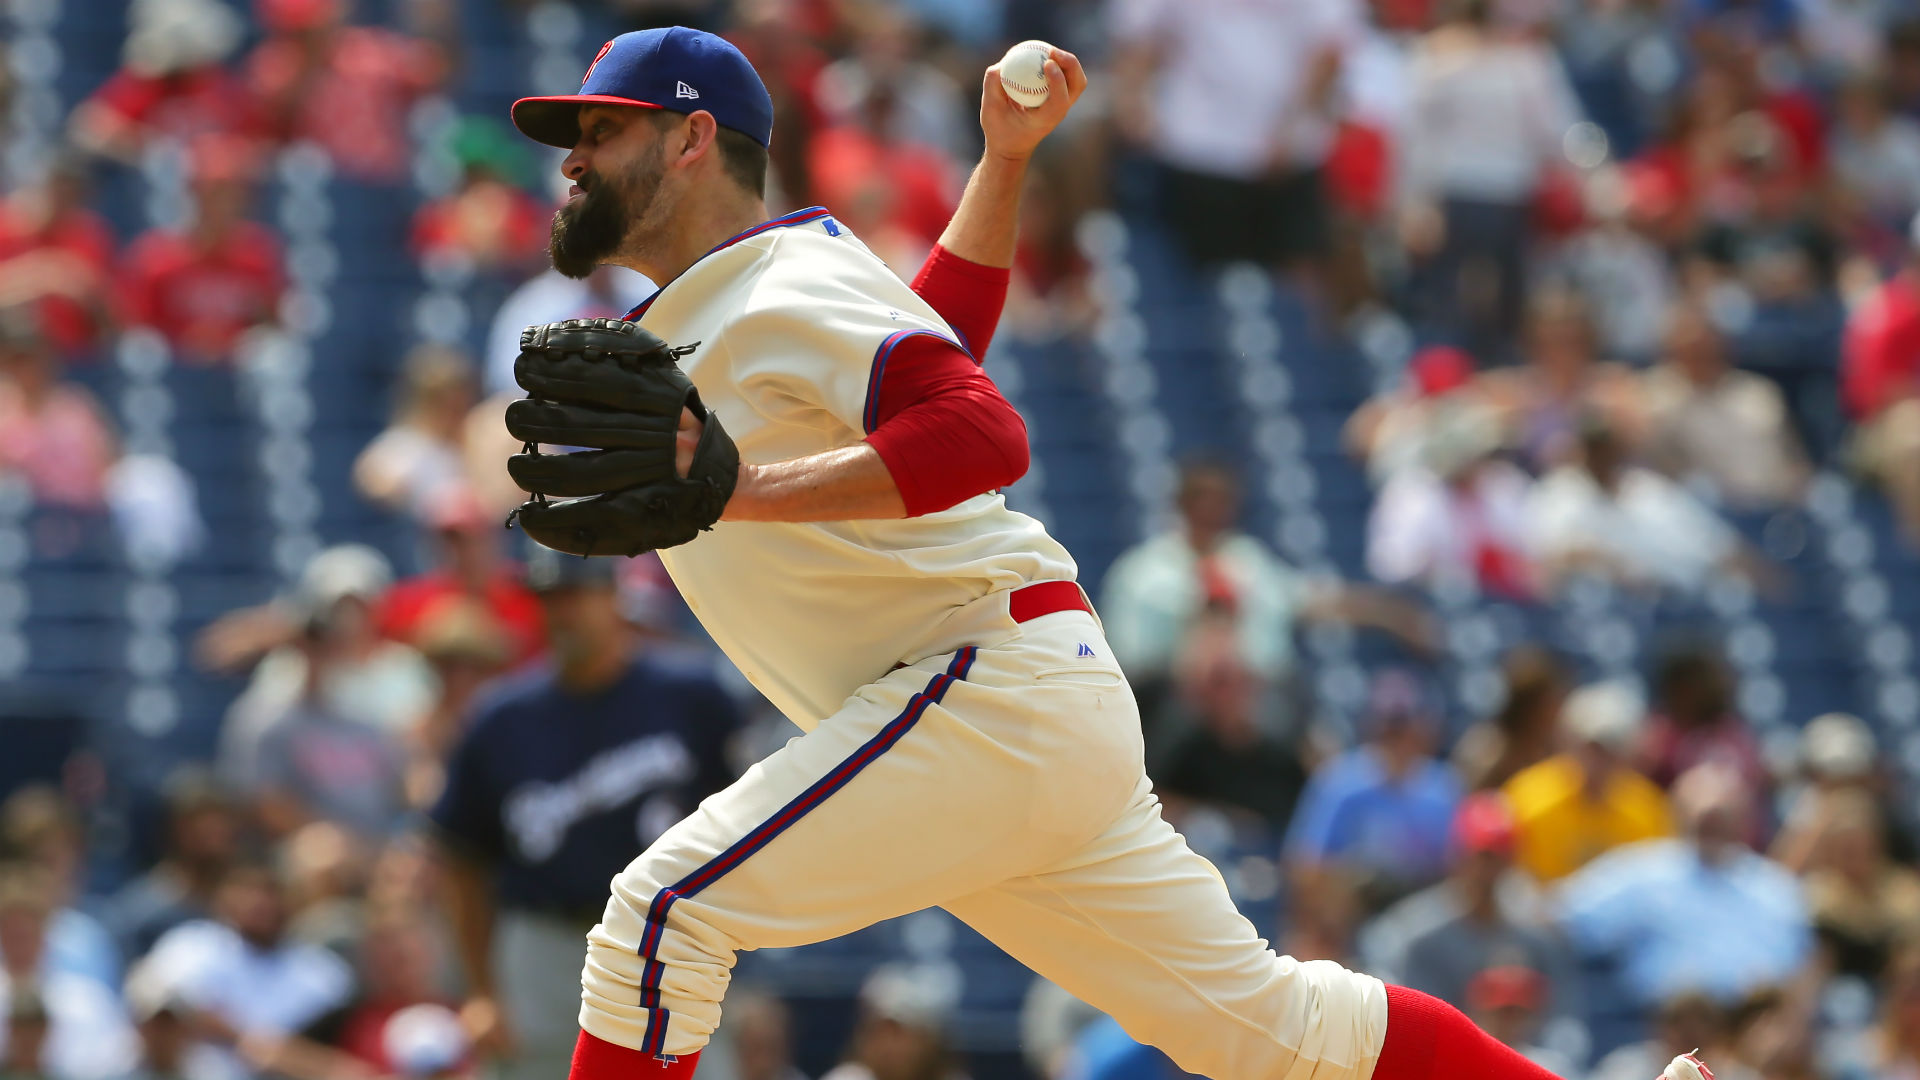 Rockies add Neshek in trade with Phillies